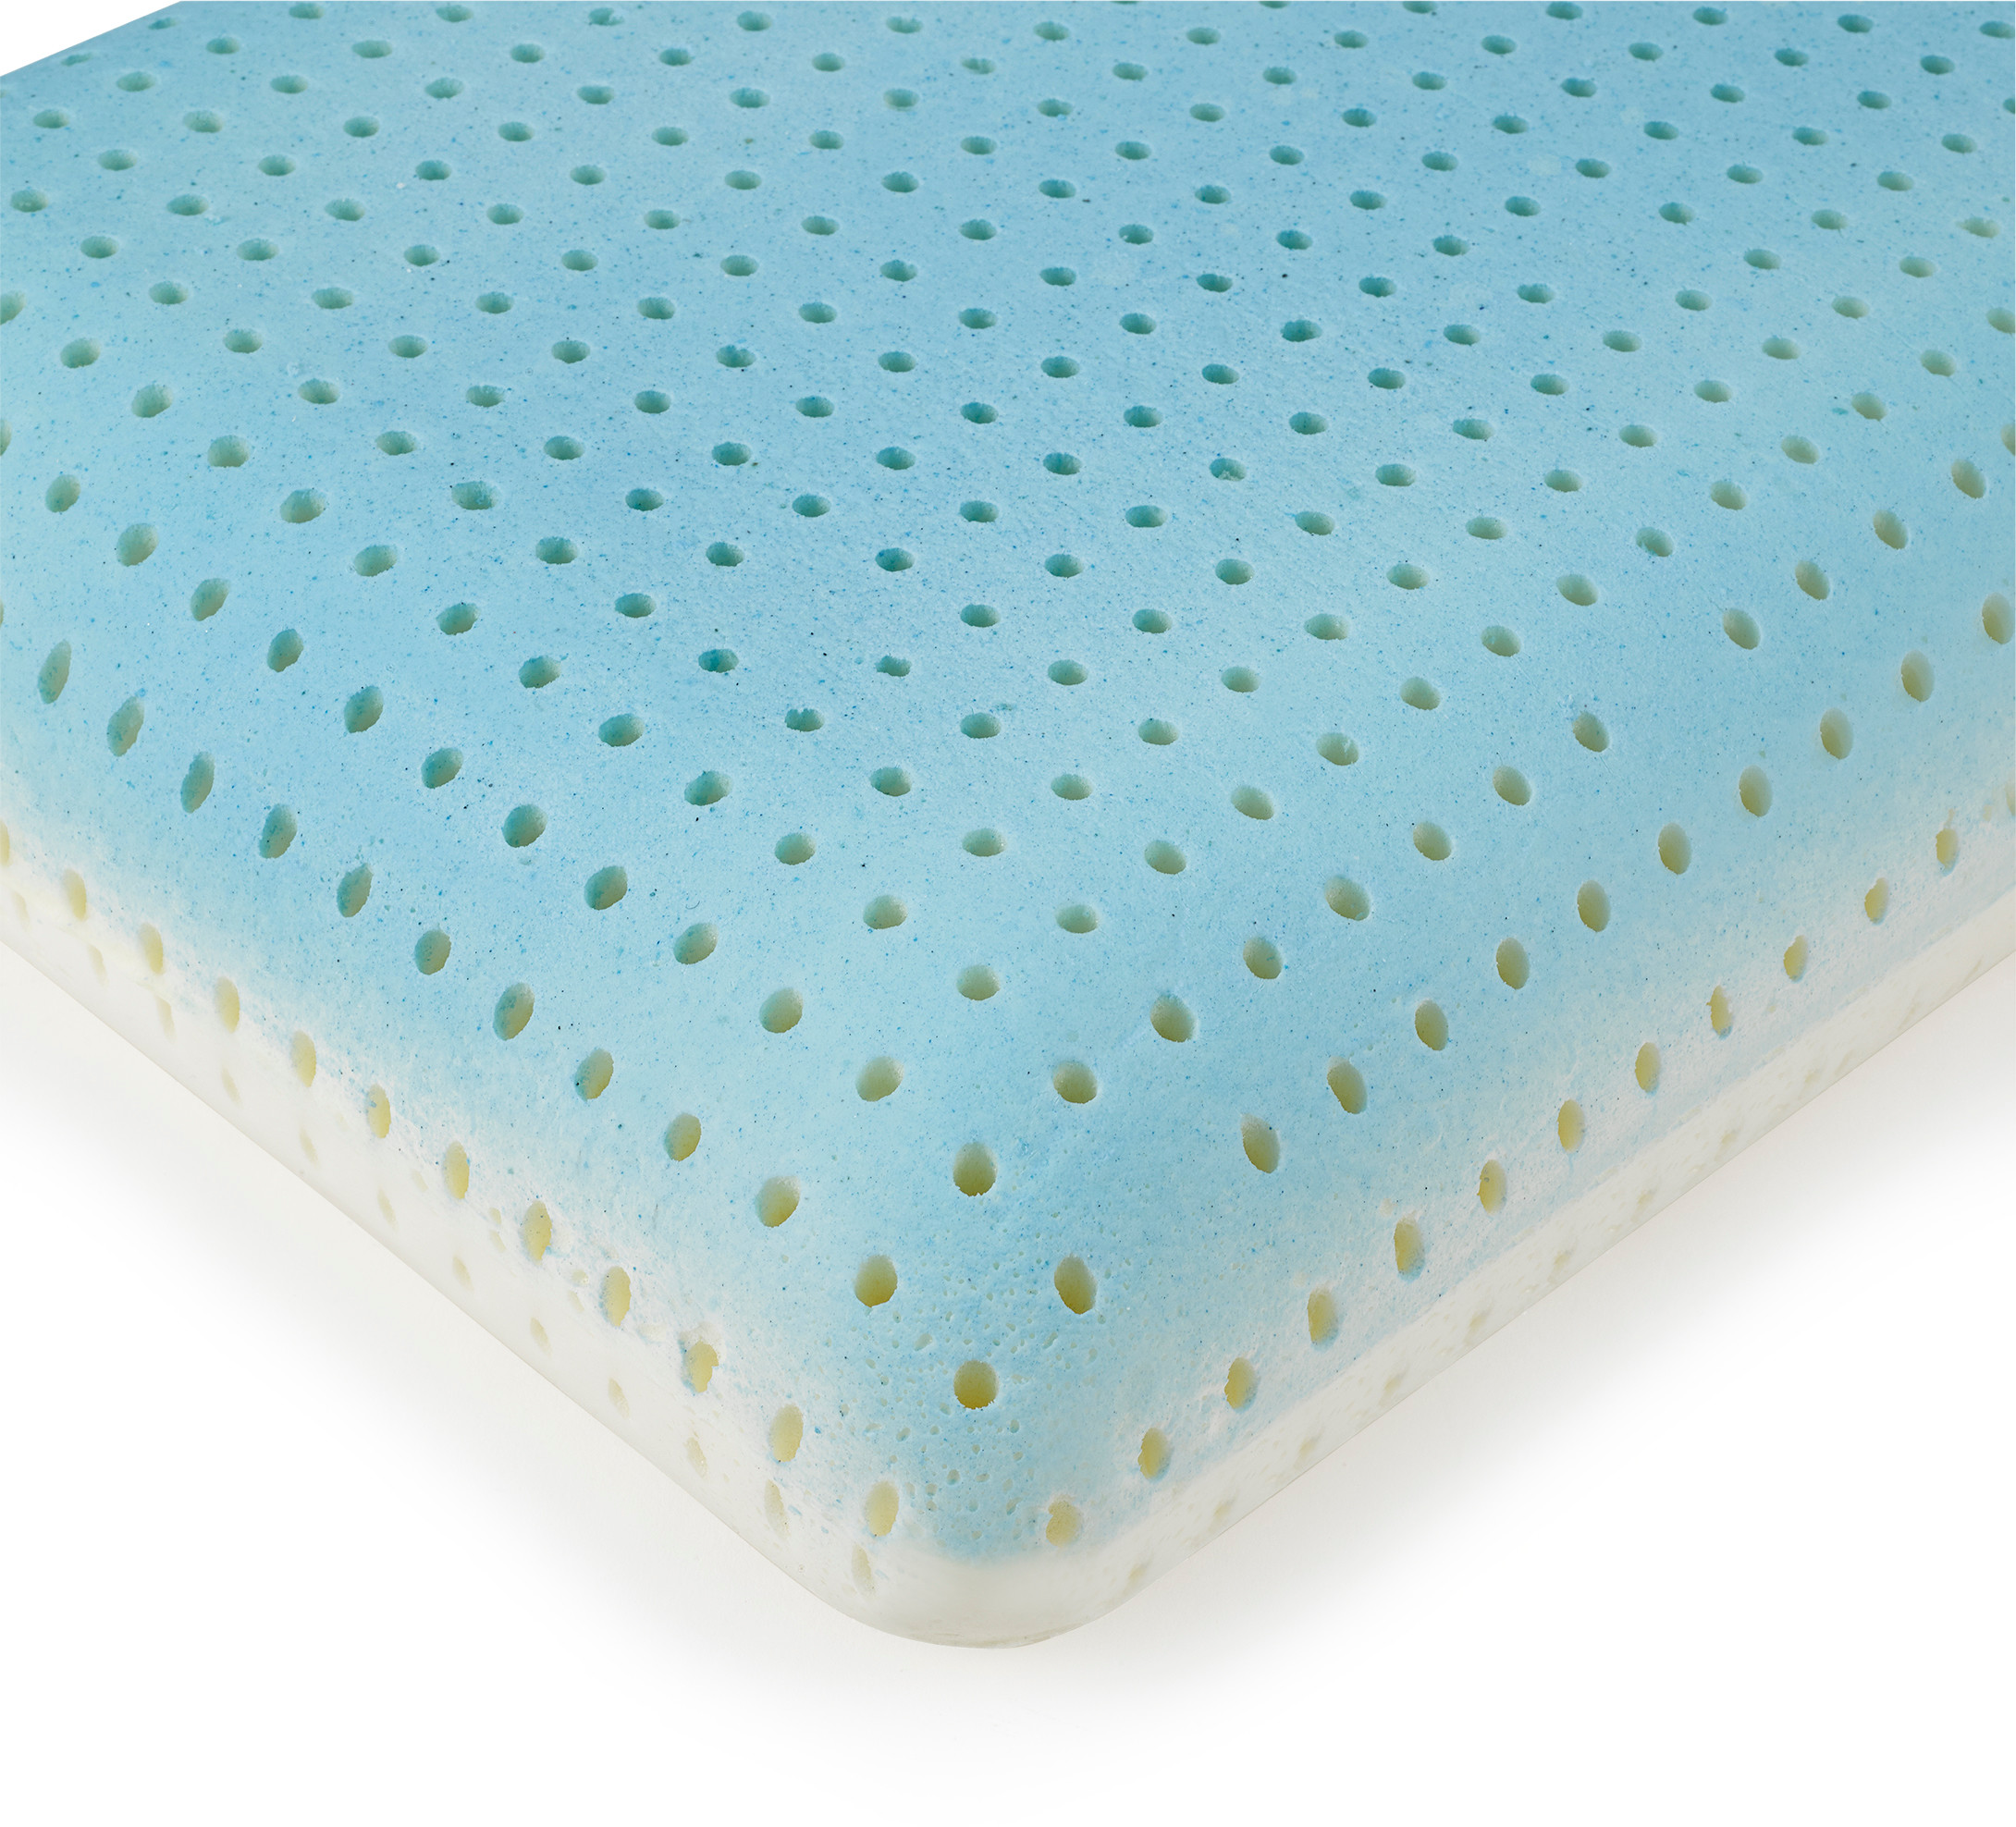 beautyrest silver aquacool memory foam pillow with removable cover